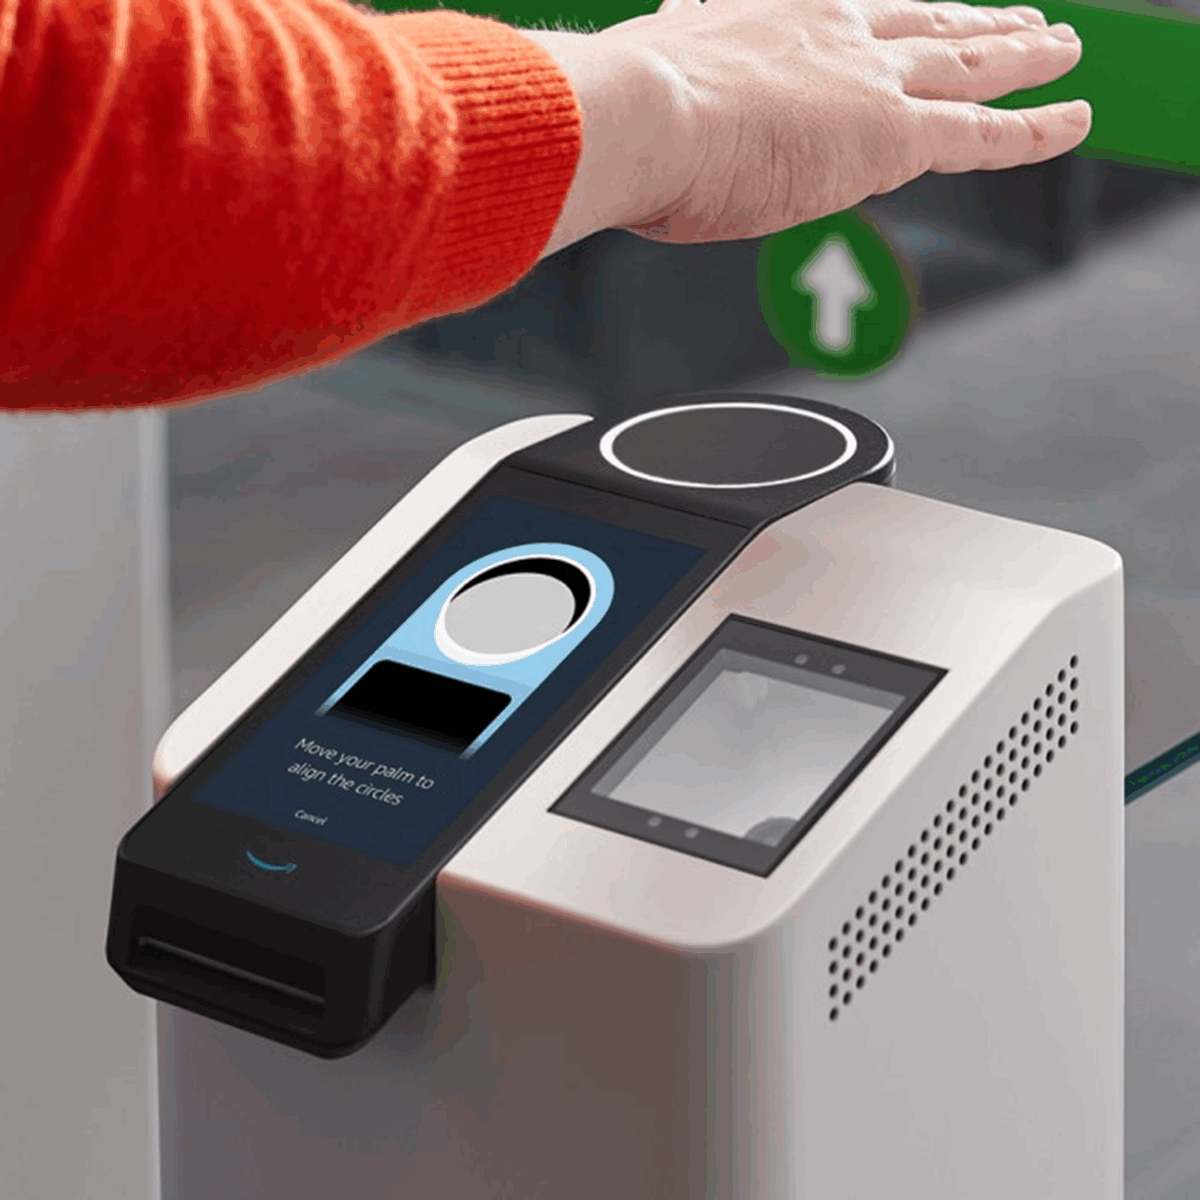 Amazon introduces <strong>contactless identification system &lsquo;Amazon One&#39;</strong>